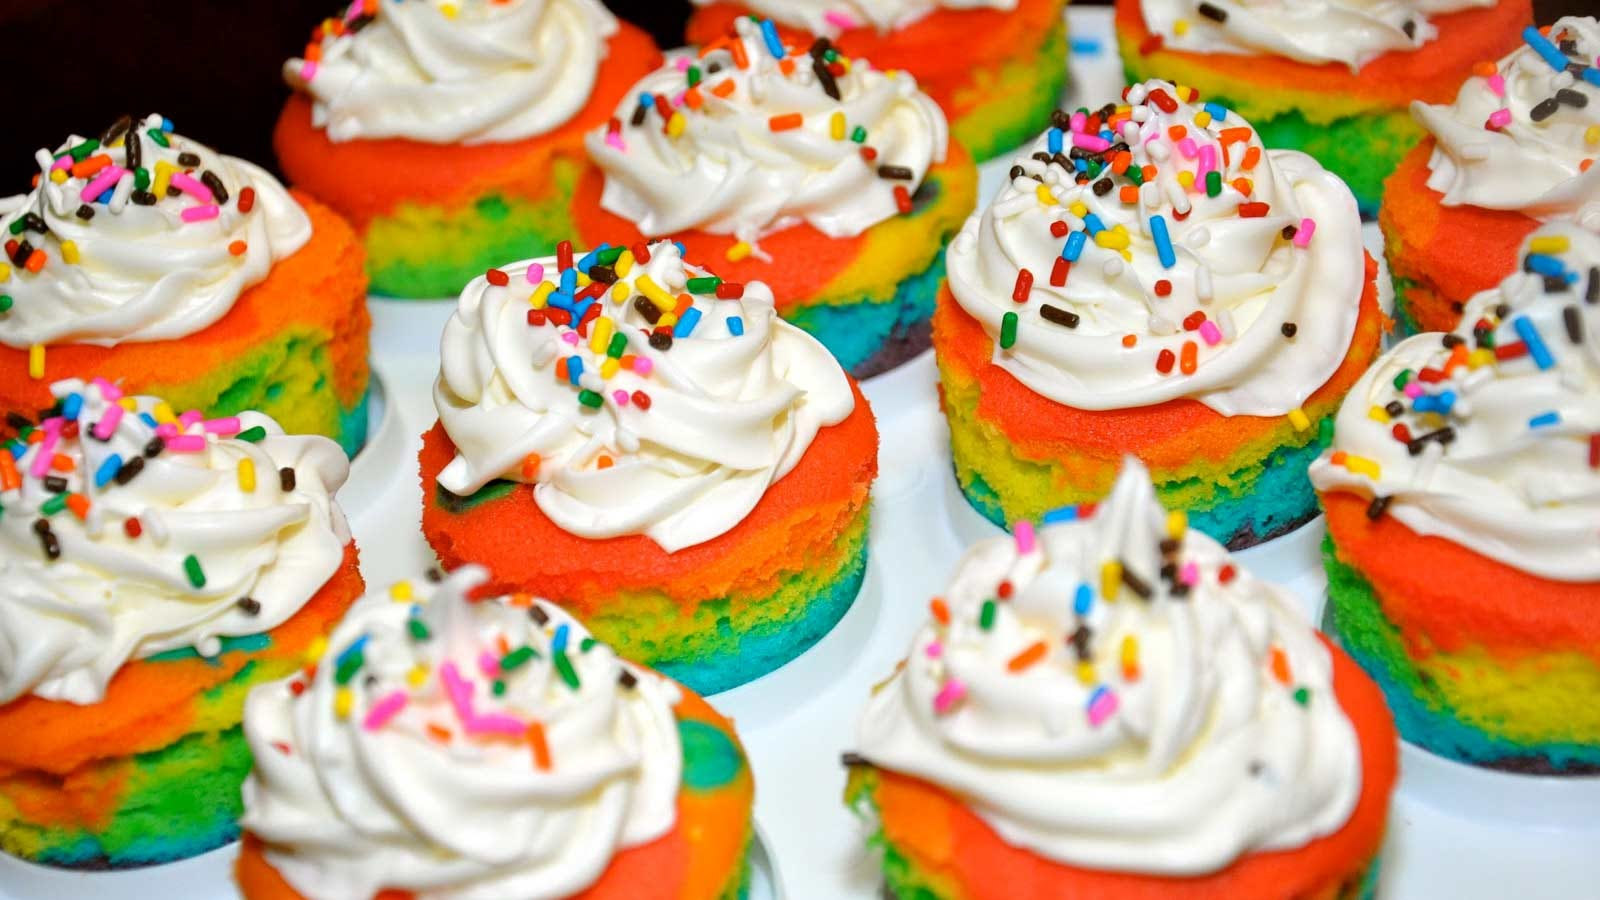 Colorful cupcakes, decorated with white frosting and sprinkles.